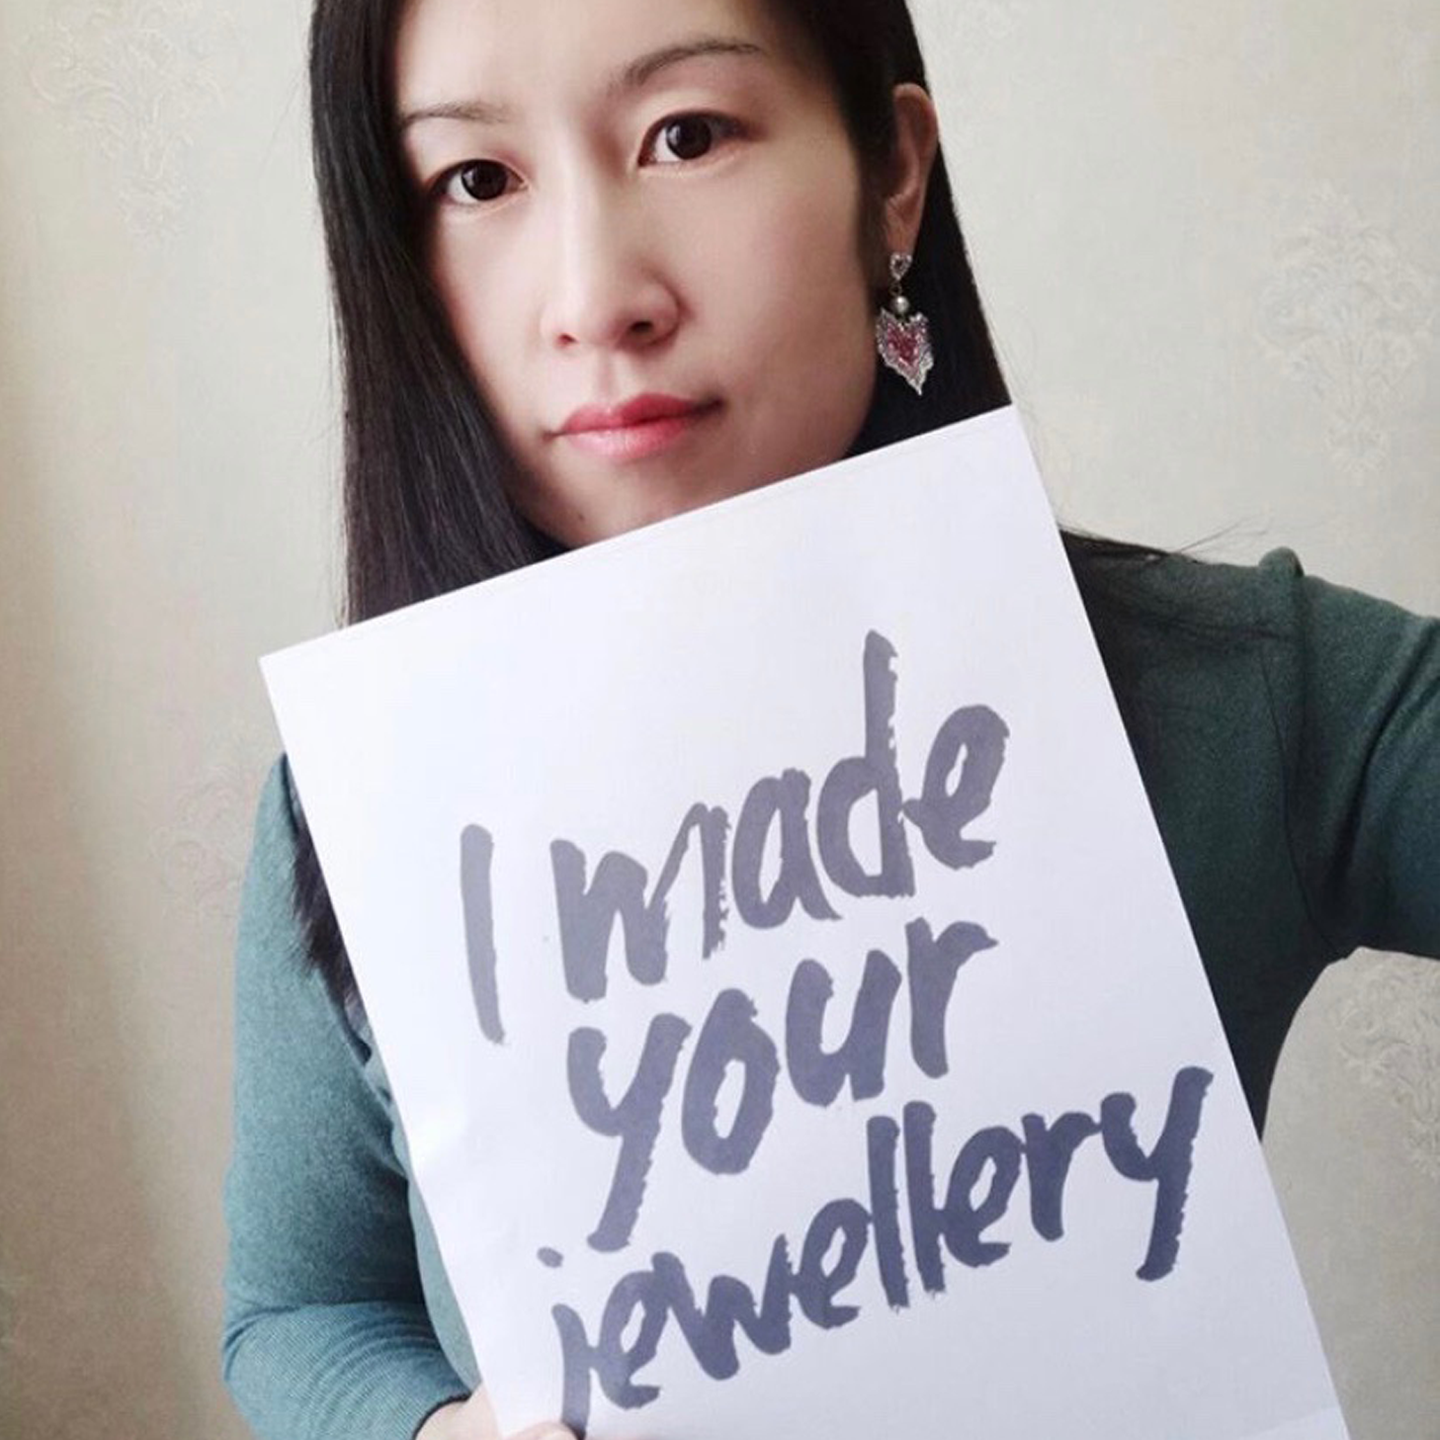 Meet the team at Xander Kostoma - Lydia, Jewellery Production Manager